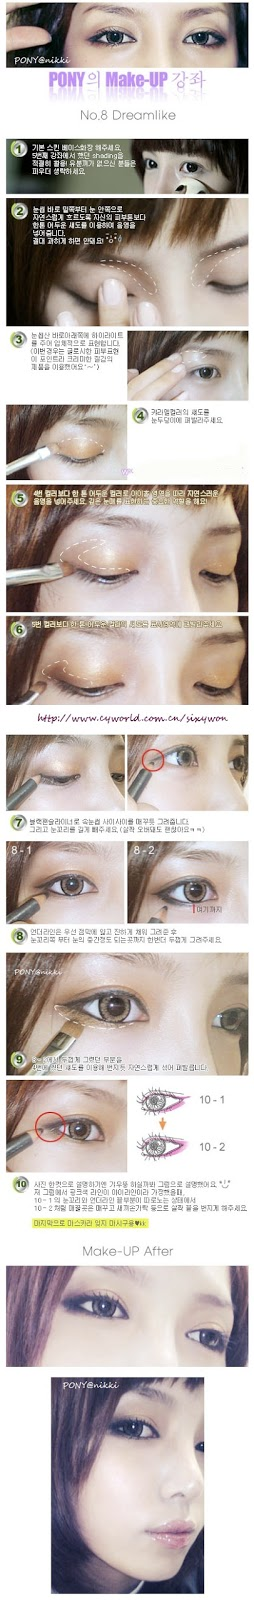 Tutorial Make Up Ala Ulzzang